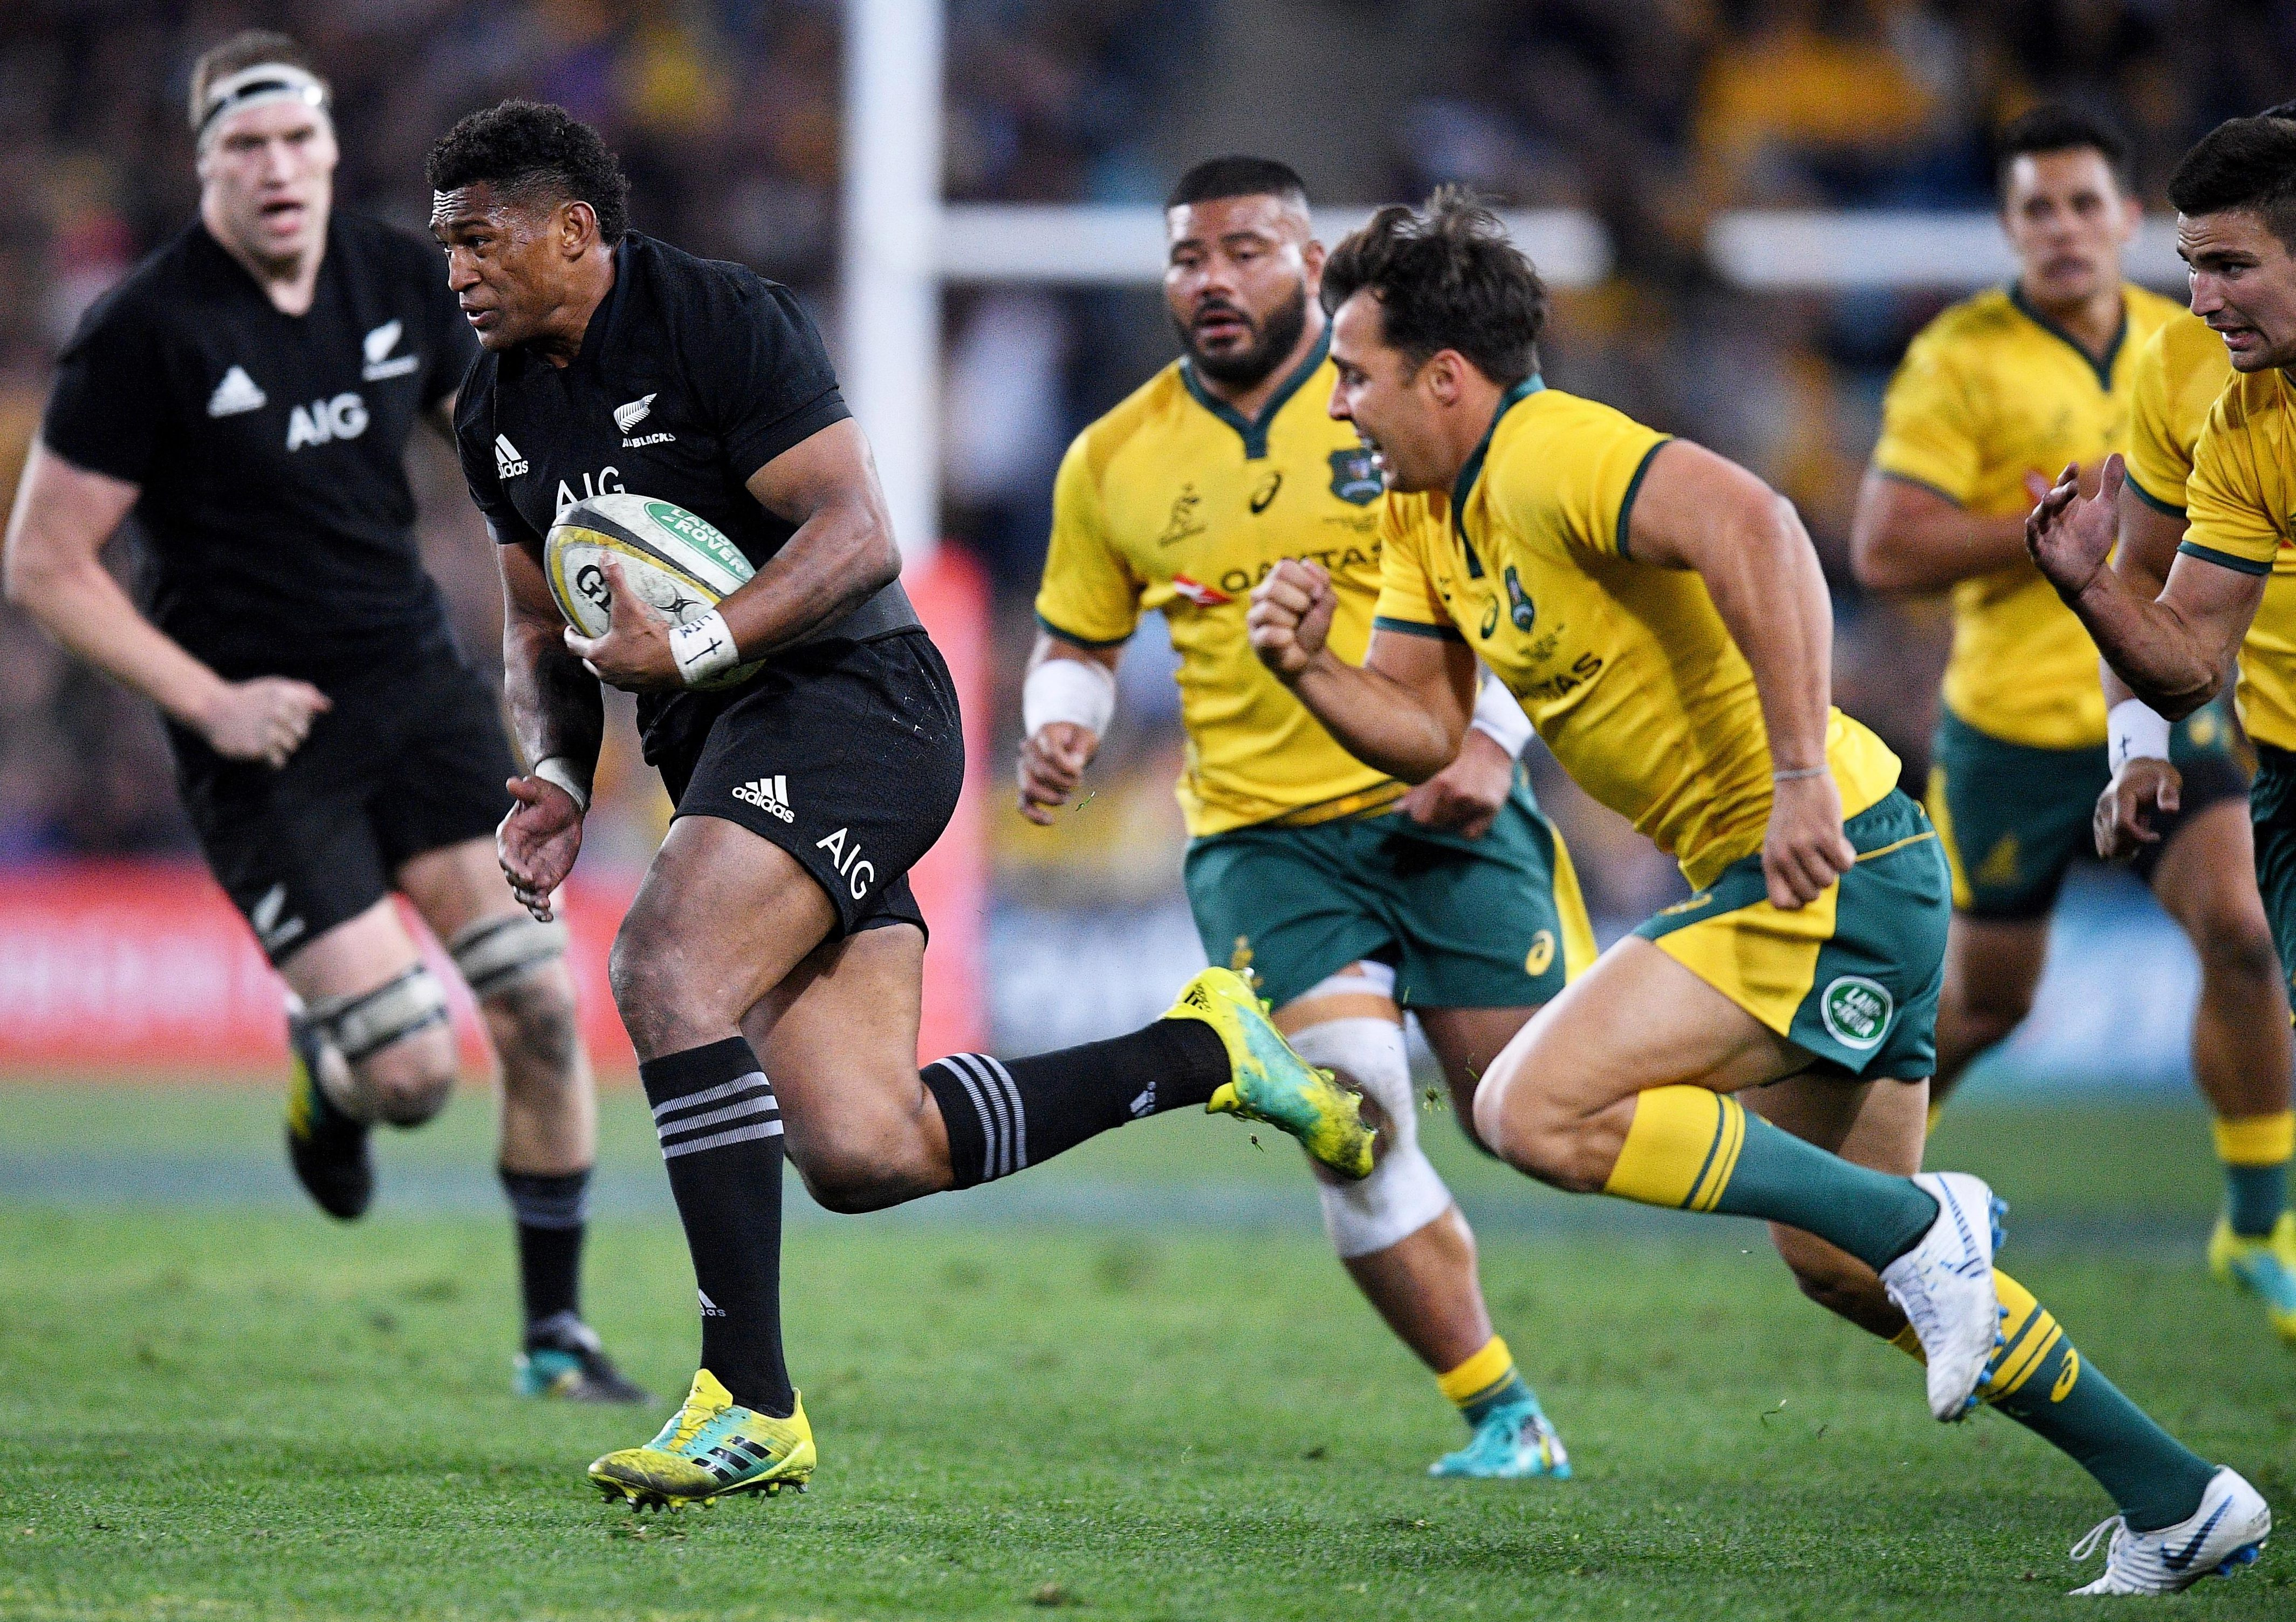 All Black Waisake Naholo makes a break to score during the first Bledisloe Cup Test